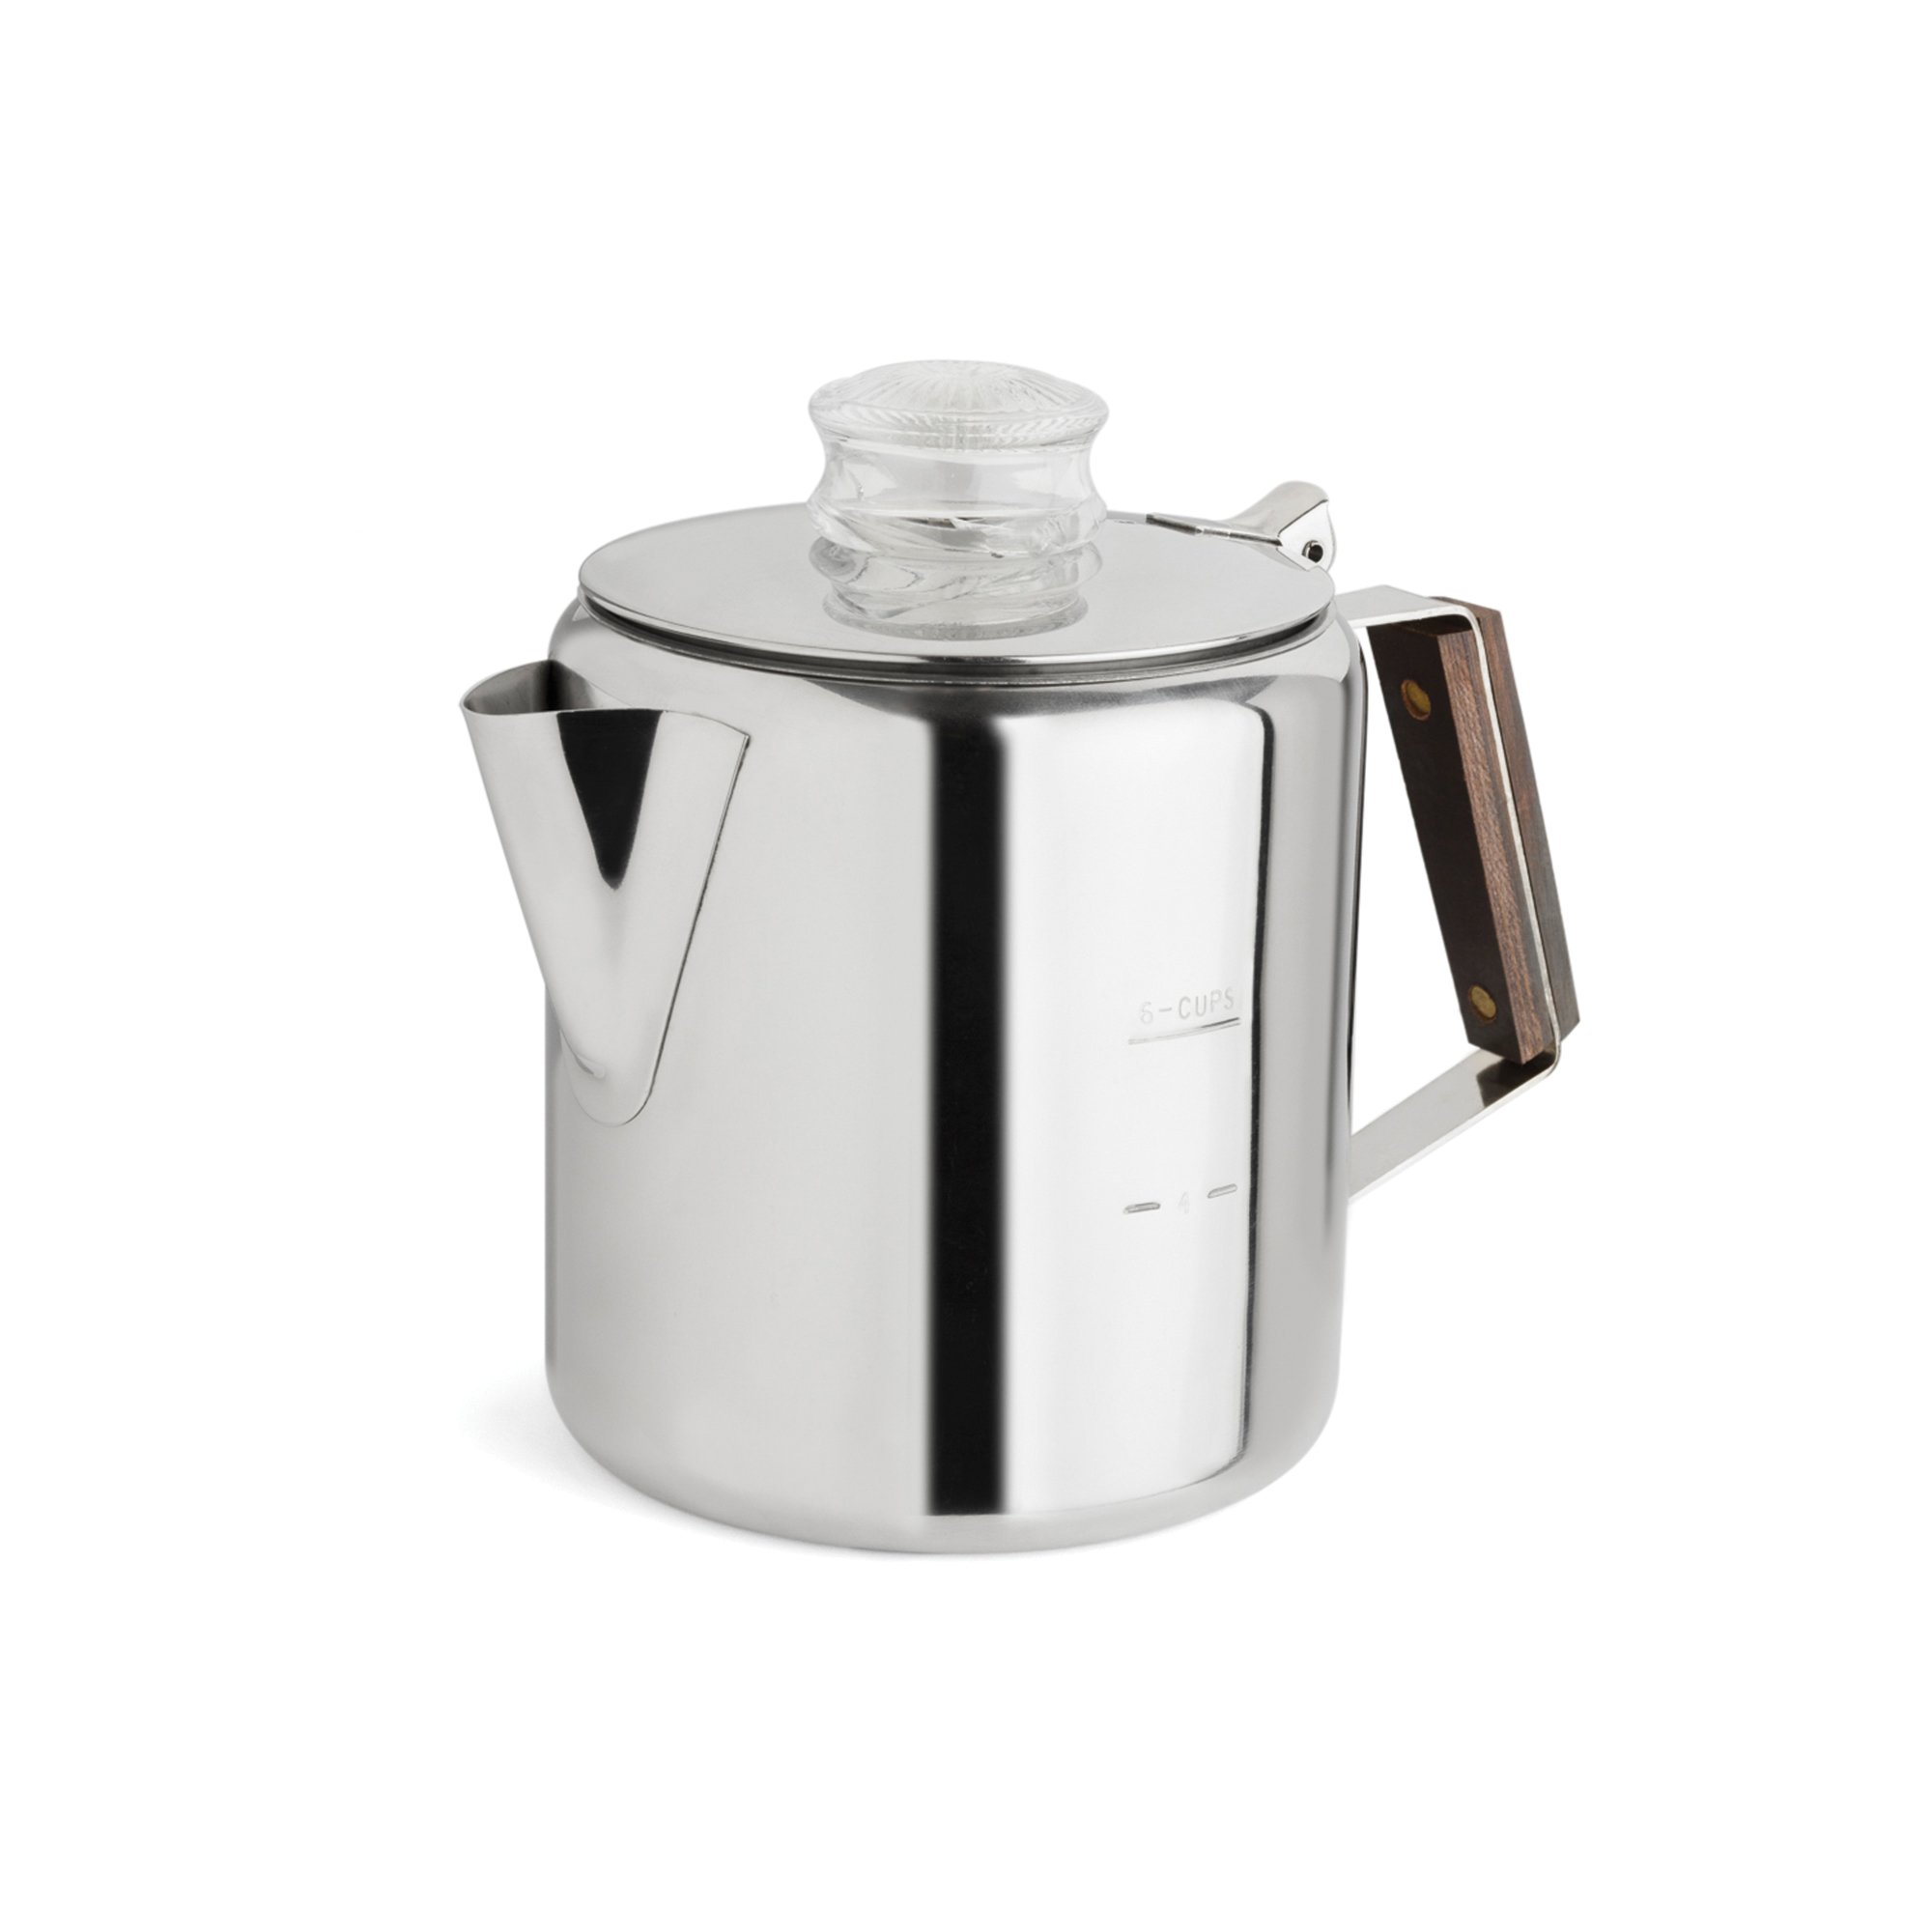 Tops 55703 Rapid Brew Stovetop Coffee Percolator, Stainless Steel, 2-6 Cup